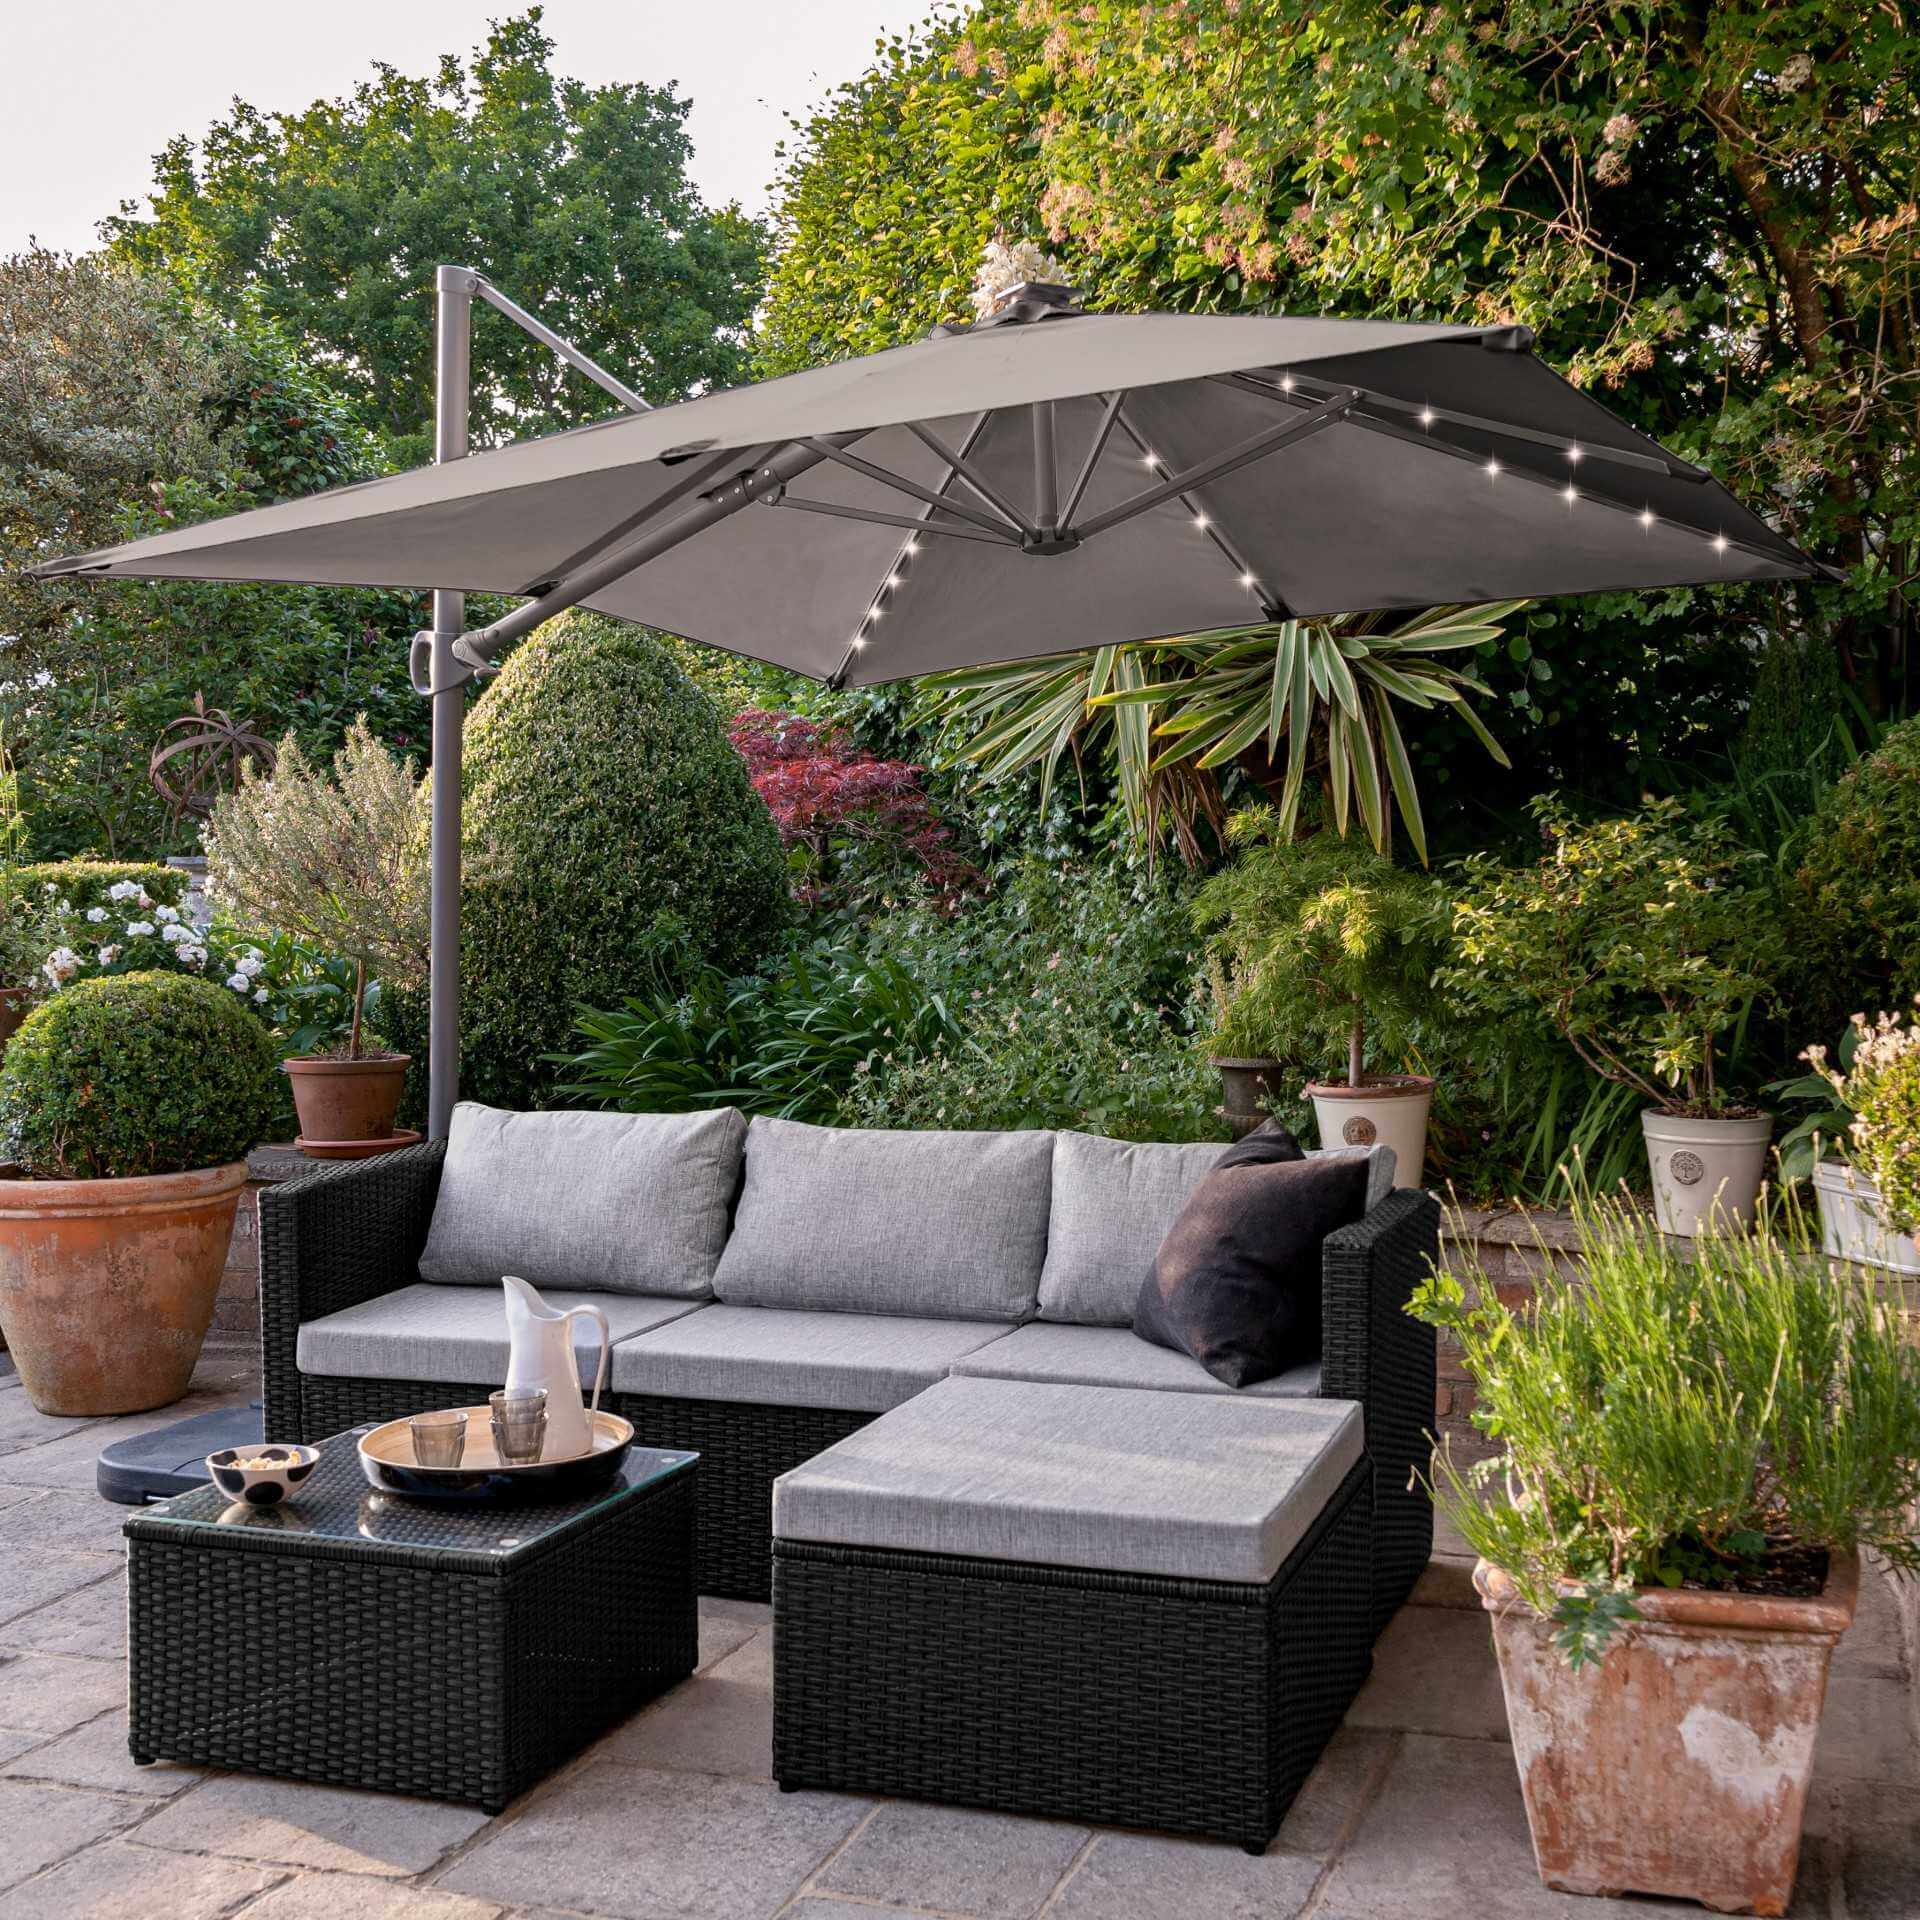 4 Seater Rattan Corner Sofa Set with LED Cantilever Parasol and Base - Black Weave